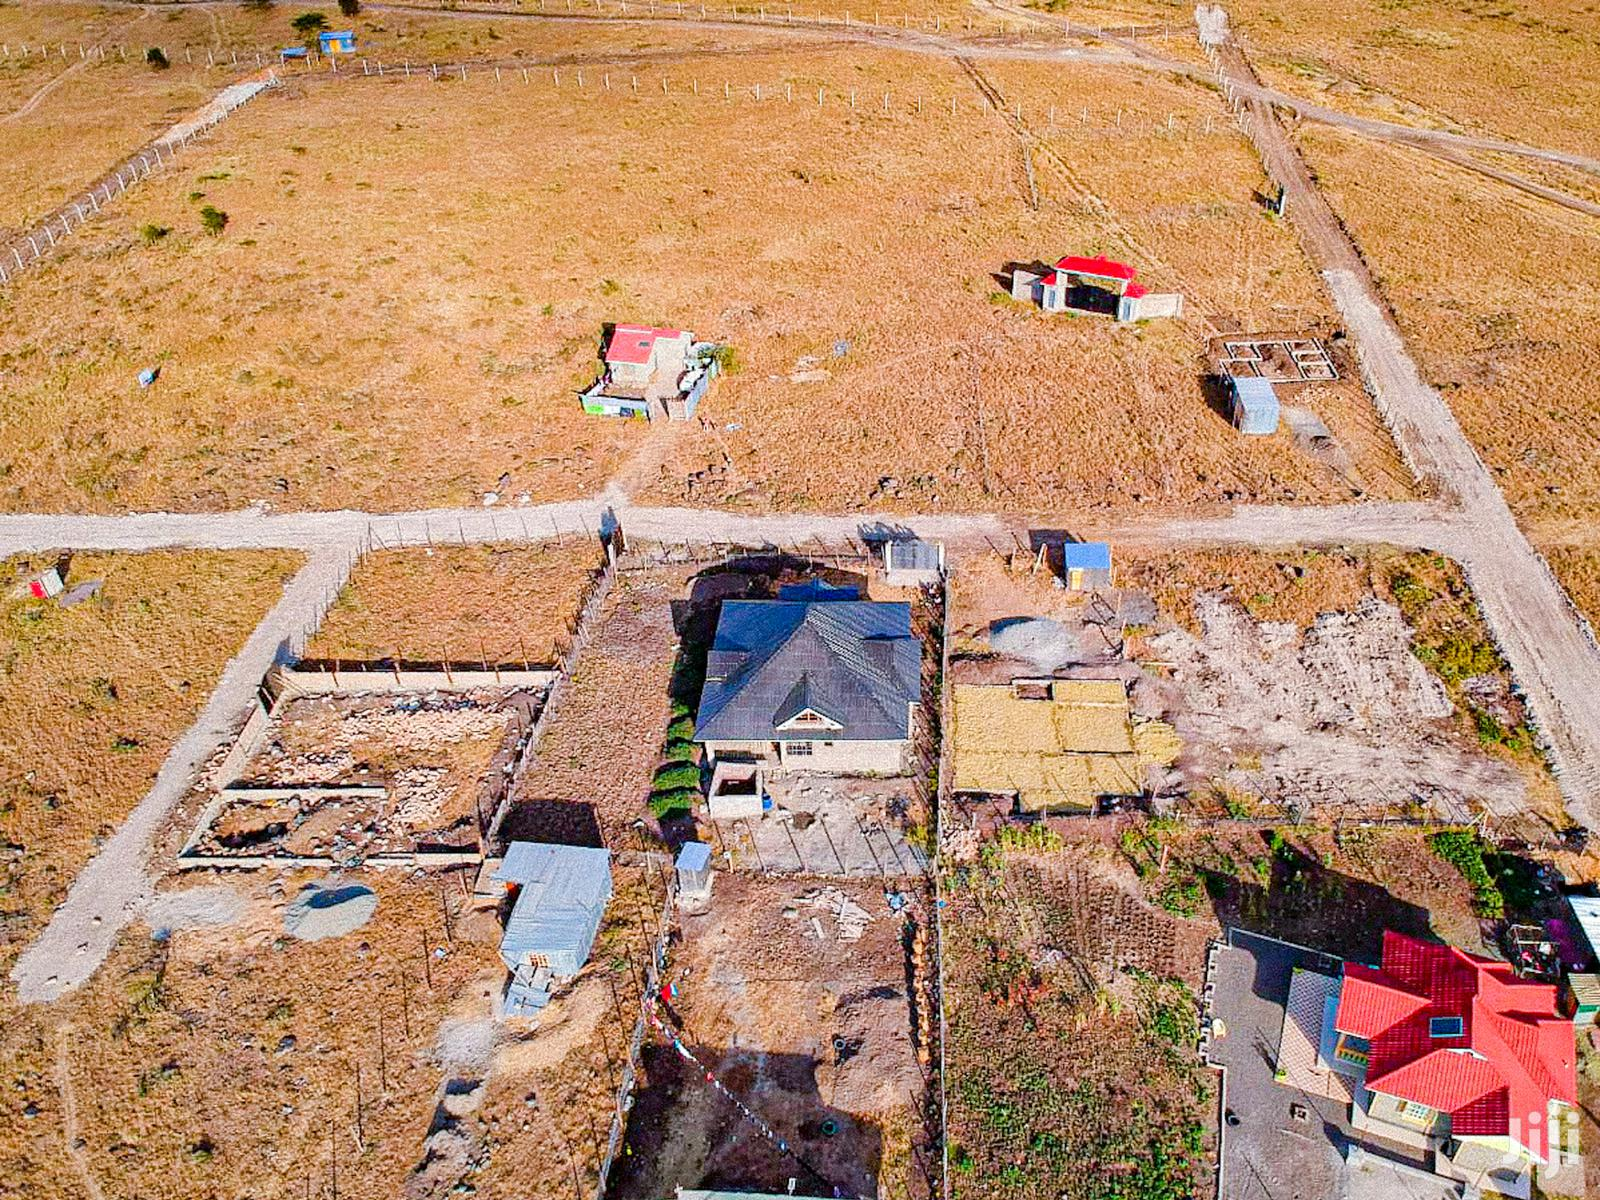 Archive: Kitengela Prime Gated Estate (Not Controlled)